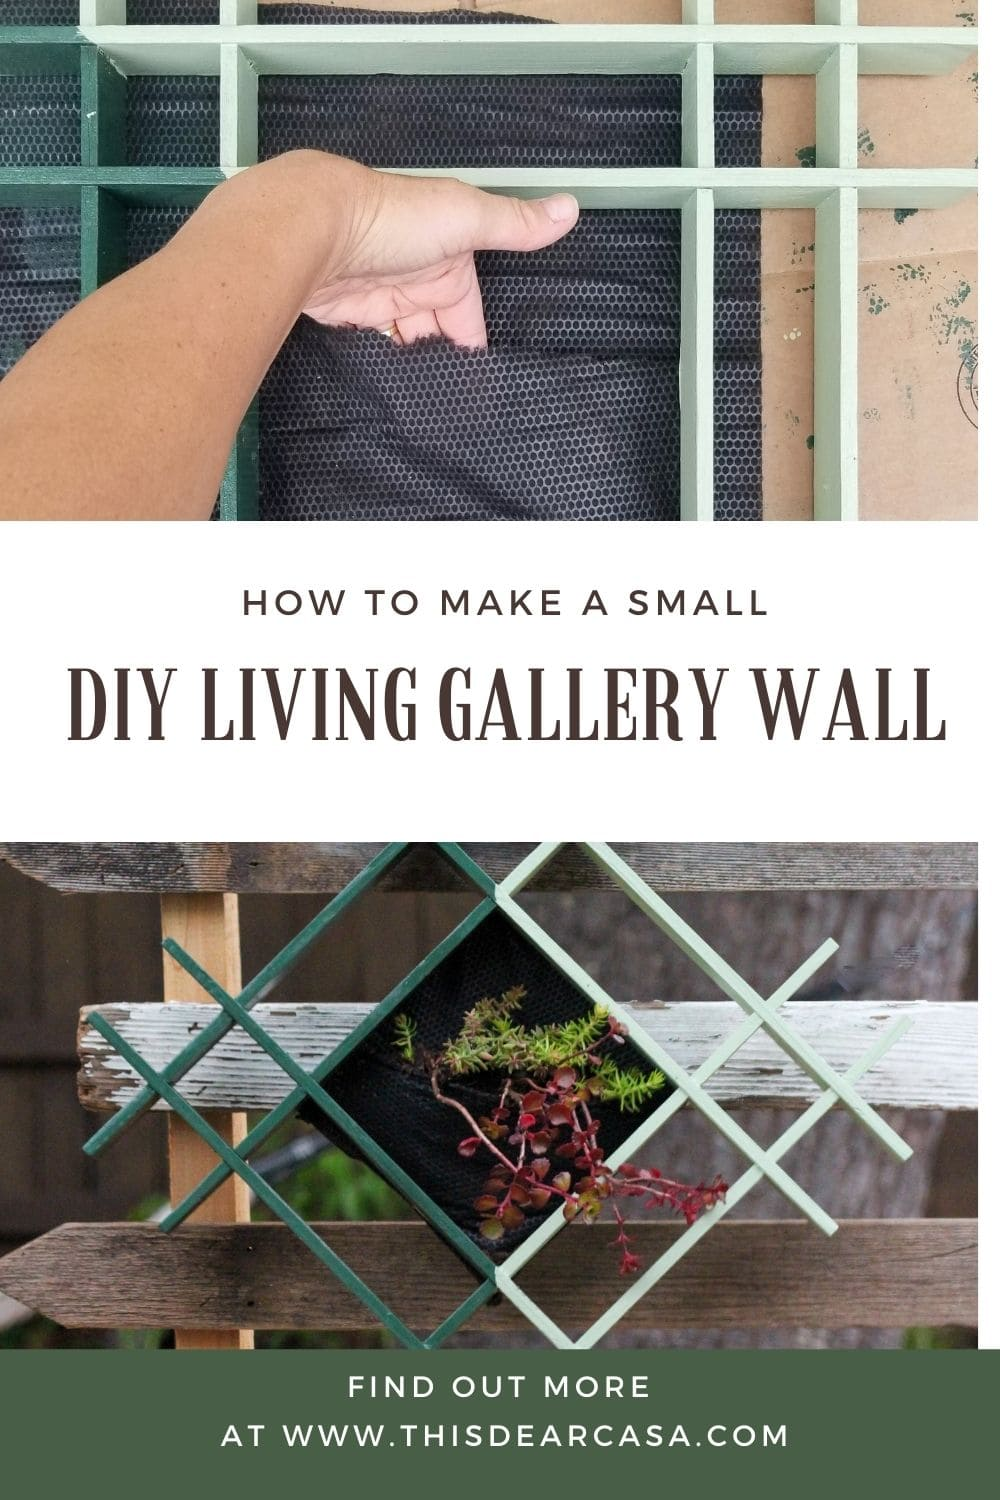 How To Make A Small DIY Living Gallery Wall